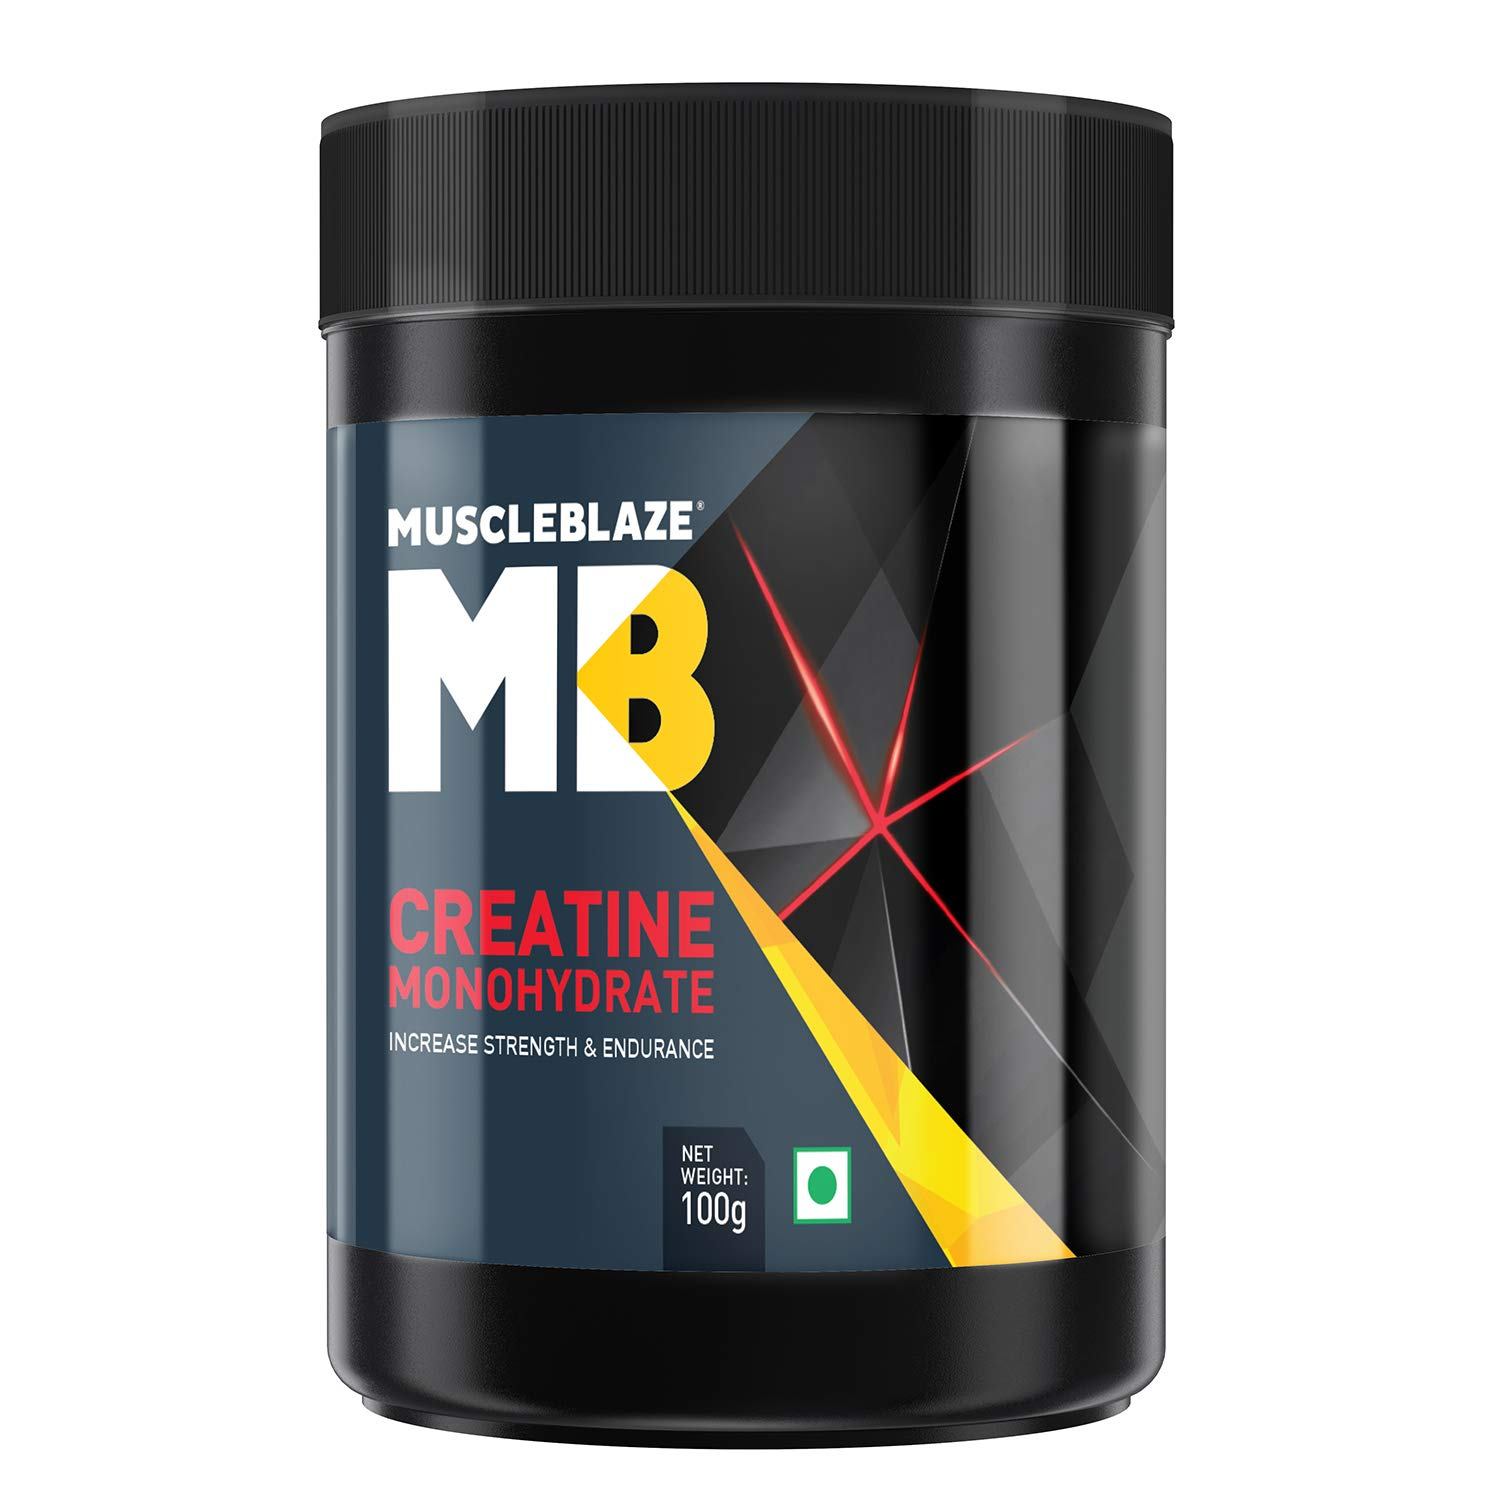 Where can you buy the best creatine powder?